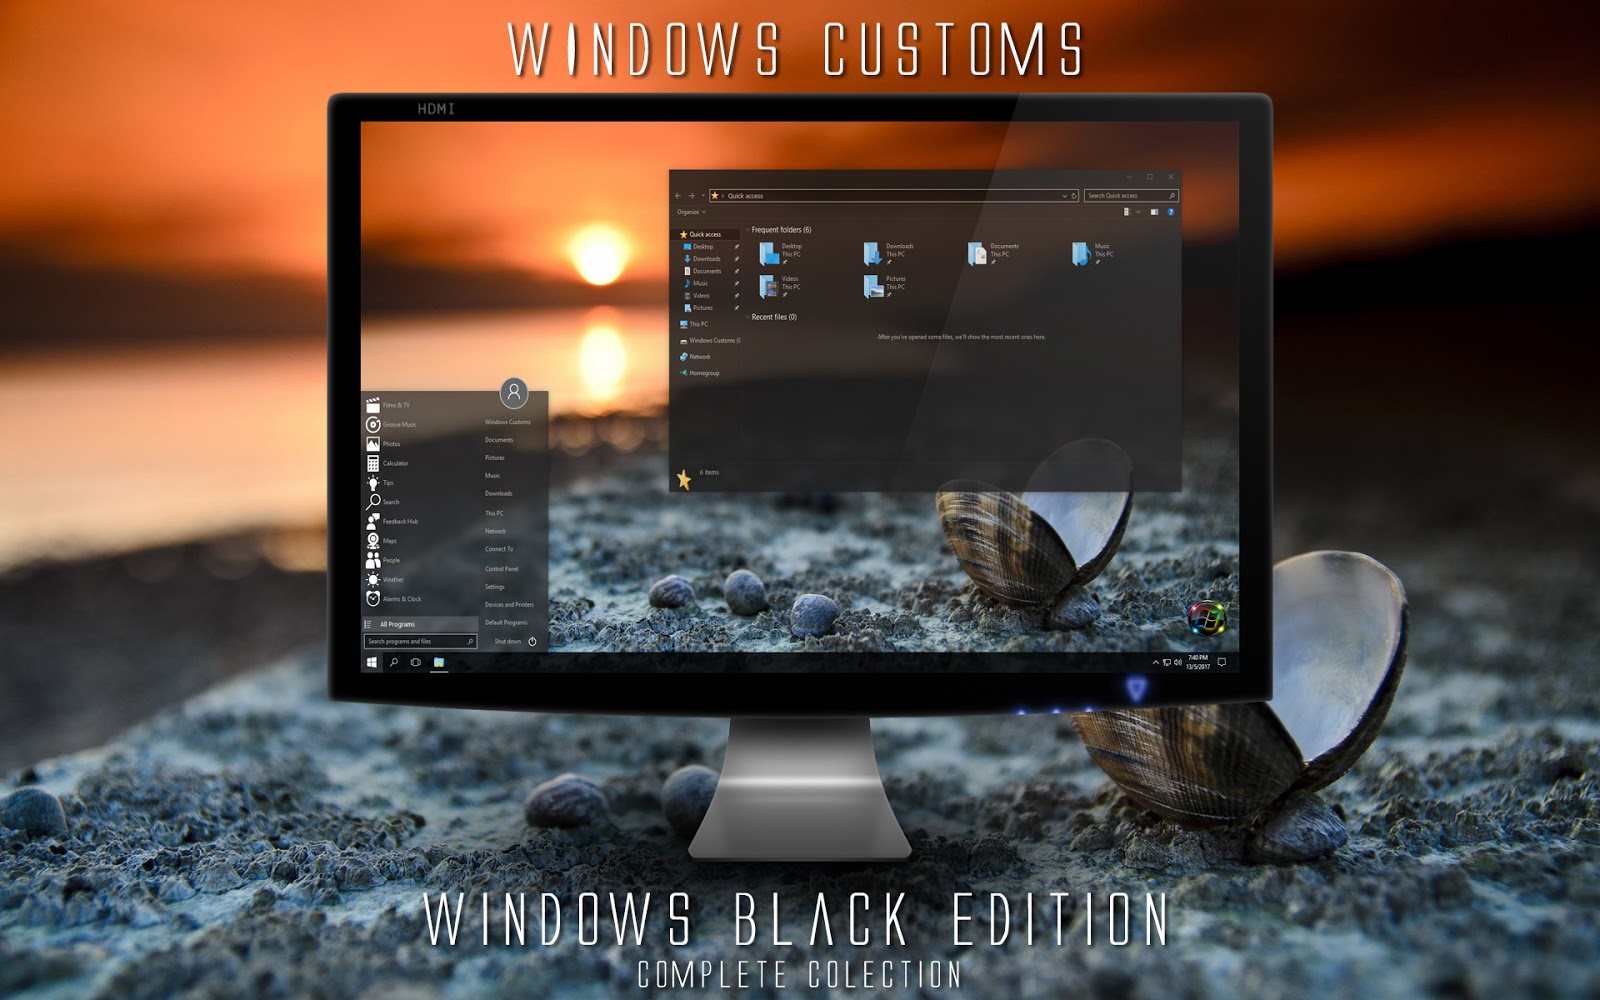 Windows Customs: Windows 10 Black Edition